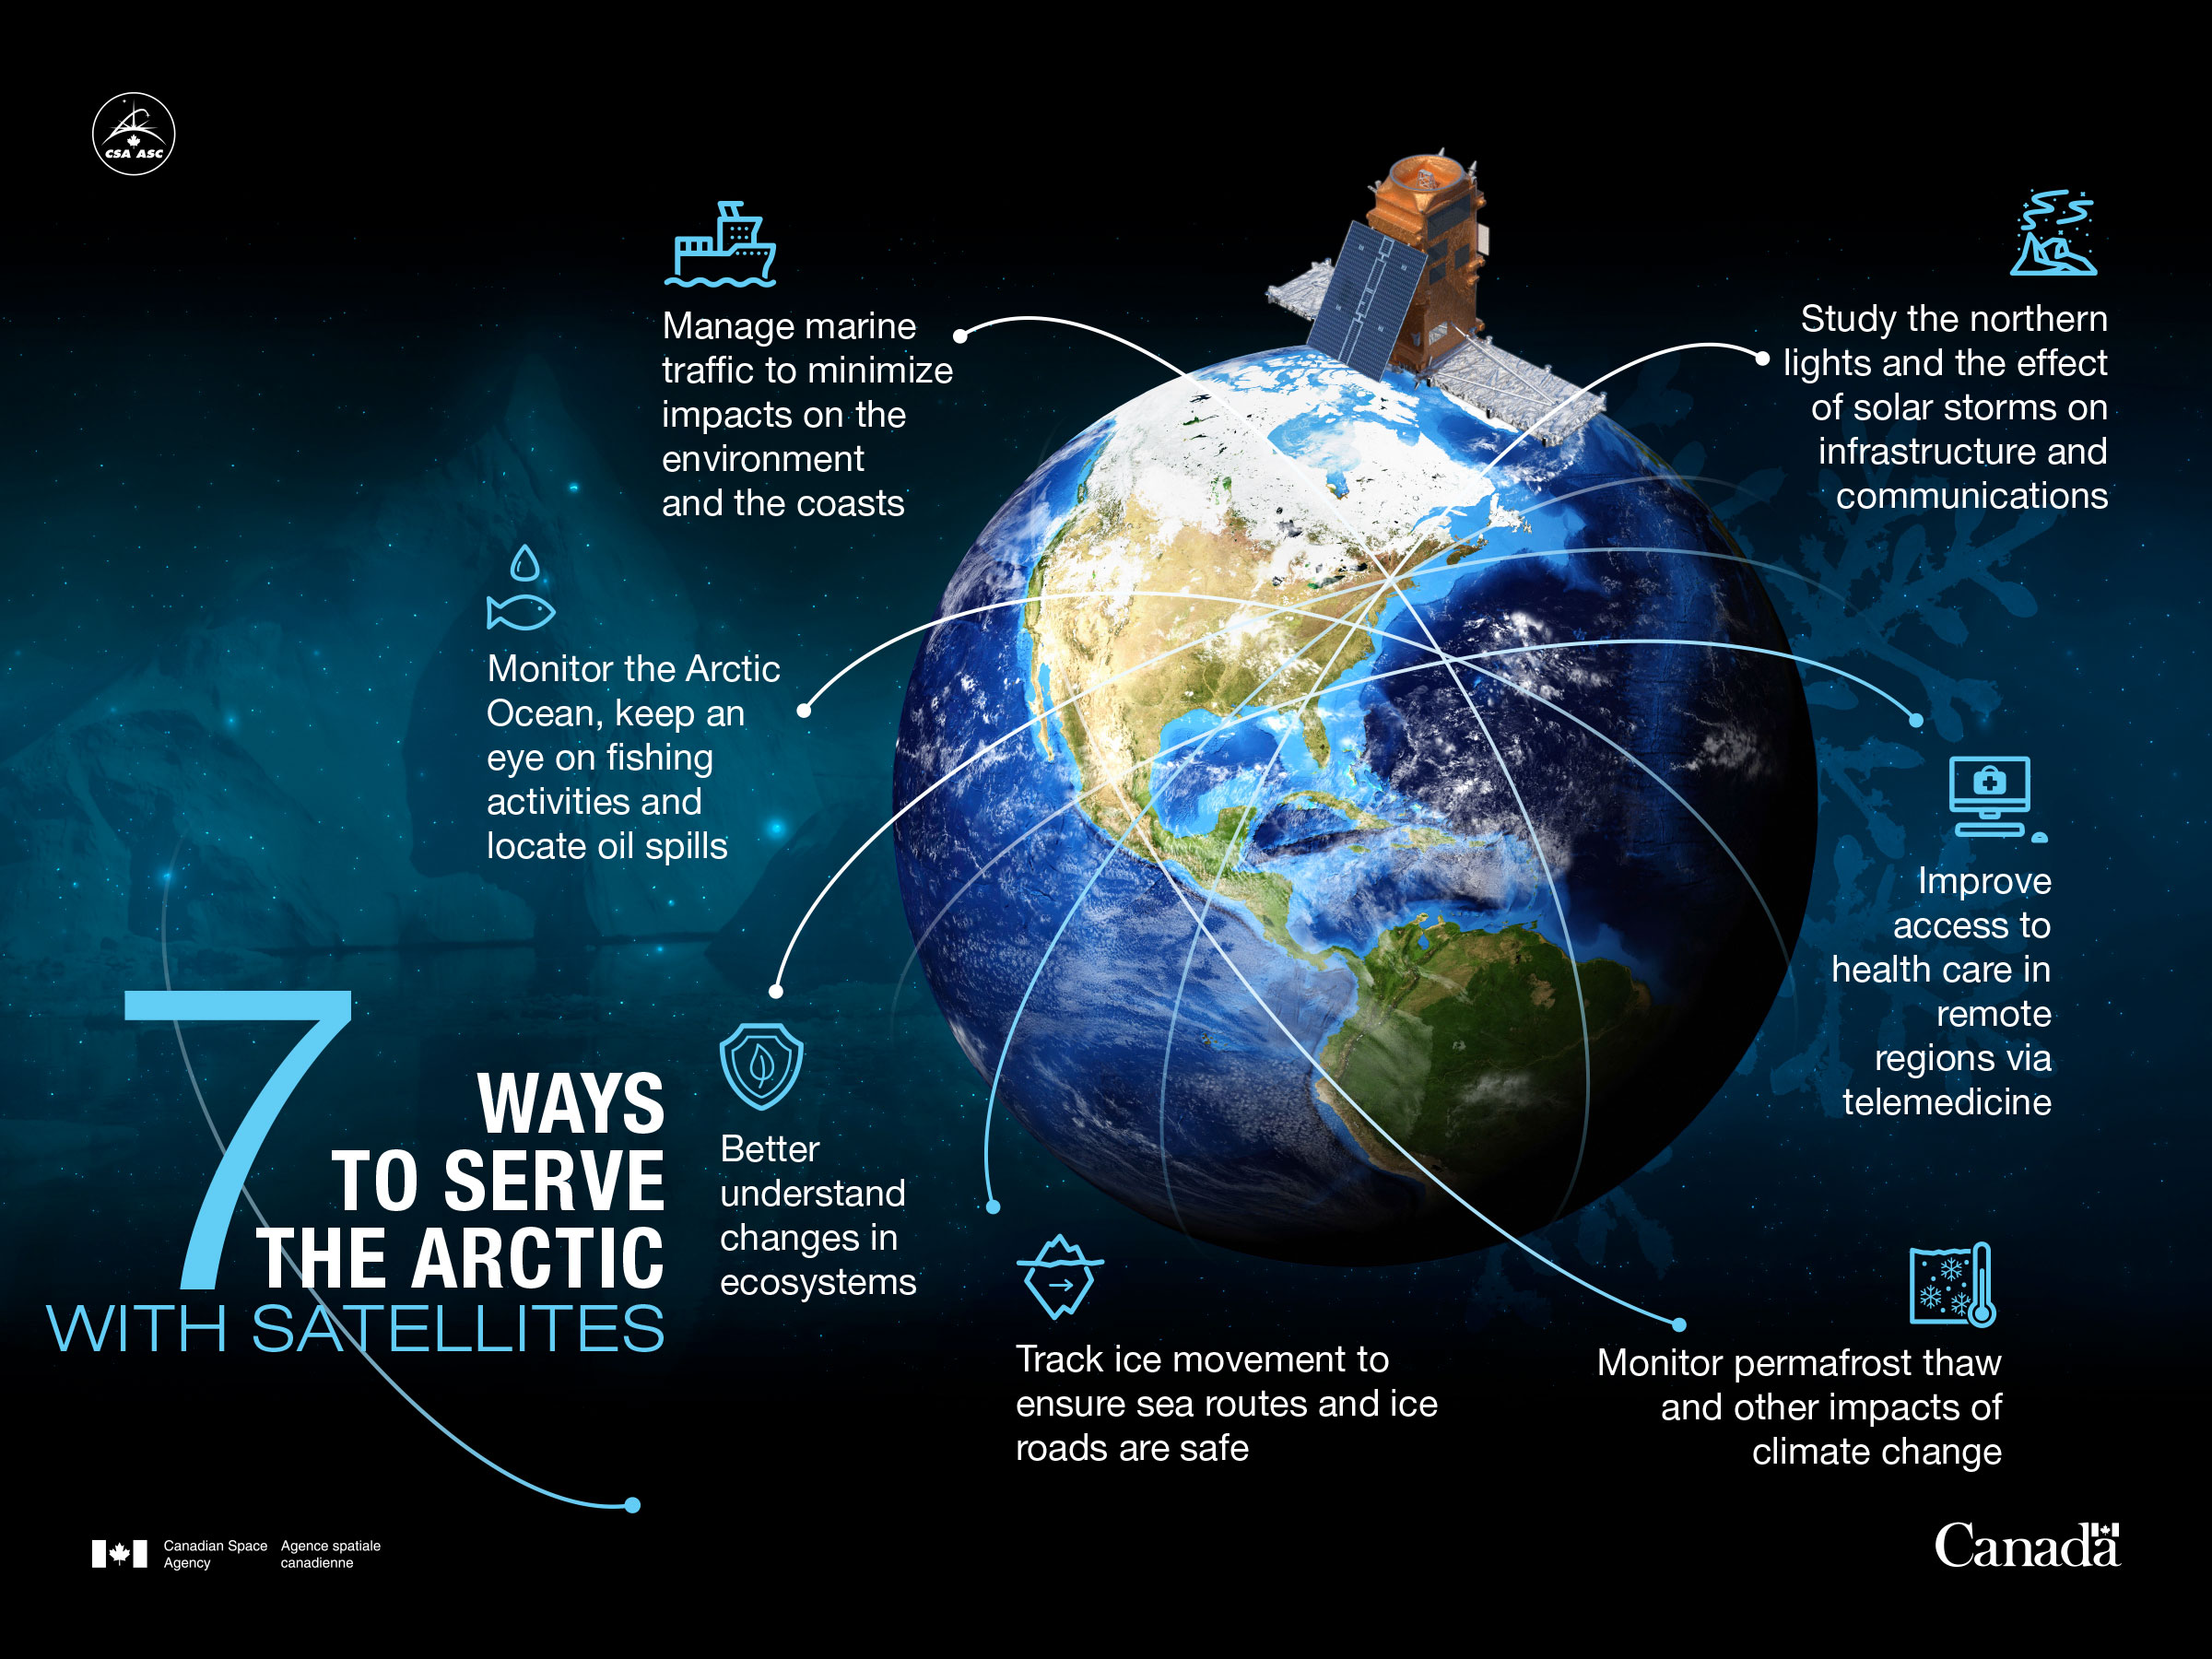 The Arctic faces a number of challenges. Our satellites keep an eye on this vast territory and its biodiversity. They monitor signs of climate change and sea ice, helping communities travel safely and facilitating navigation for ships. This visual illustrates 7 of the many ways space serves the Arctic and the Great Canadian North